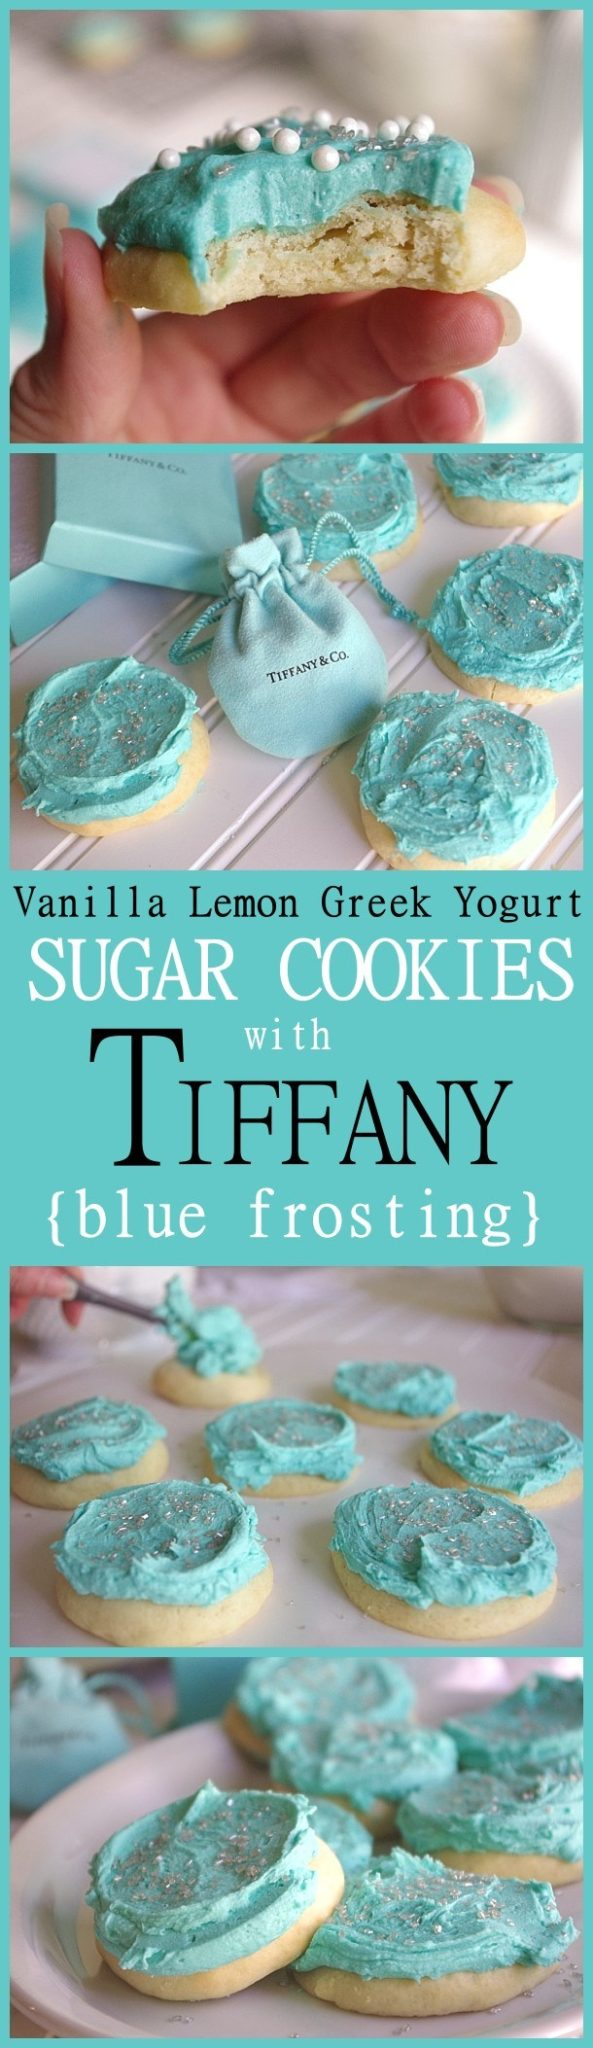 Lightly Lemon Greek Yogurt Frosted Sugar Cookies Recipe {and how to get perfectly Tiffany Blue colored FROSTING!} Fun Christmas Cookies for gift plates this holiday season! via Dreaming in DIY #chrstmascookies #christmascandy #christmastreats #holidaydesserts #holidayrecipes #christmascandies #holidaygiftplates